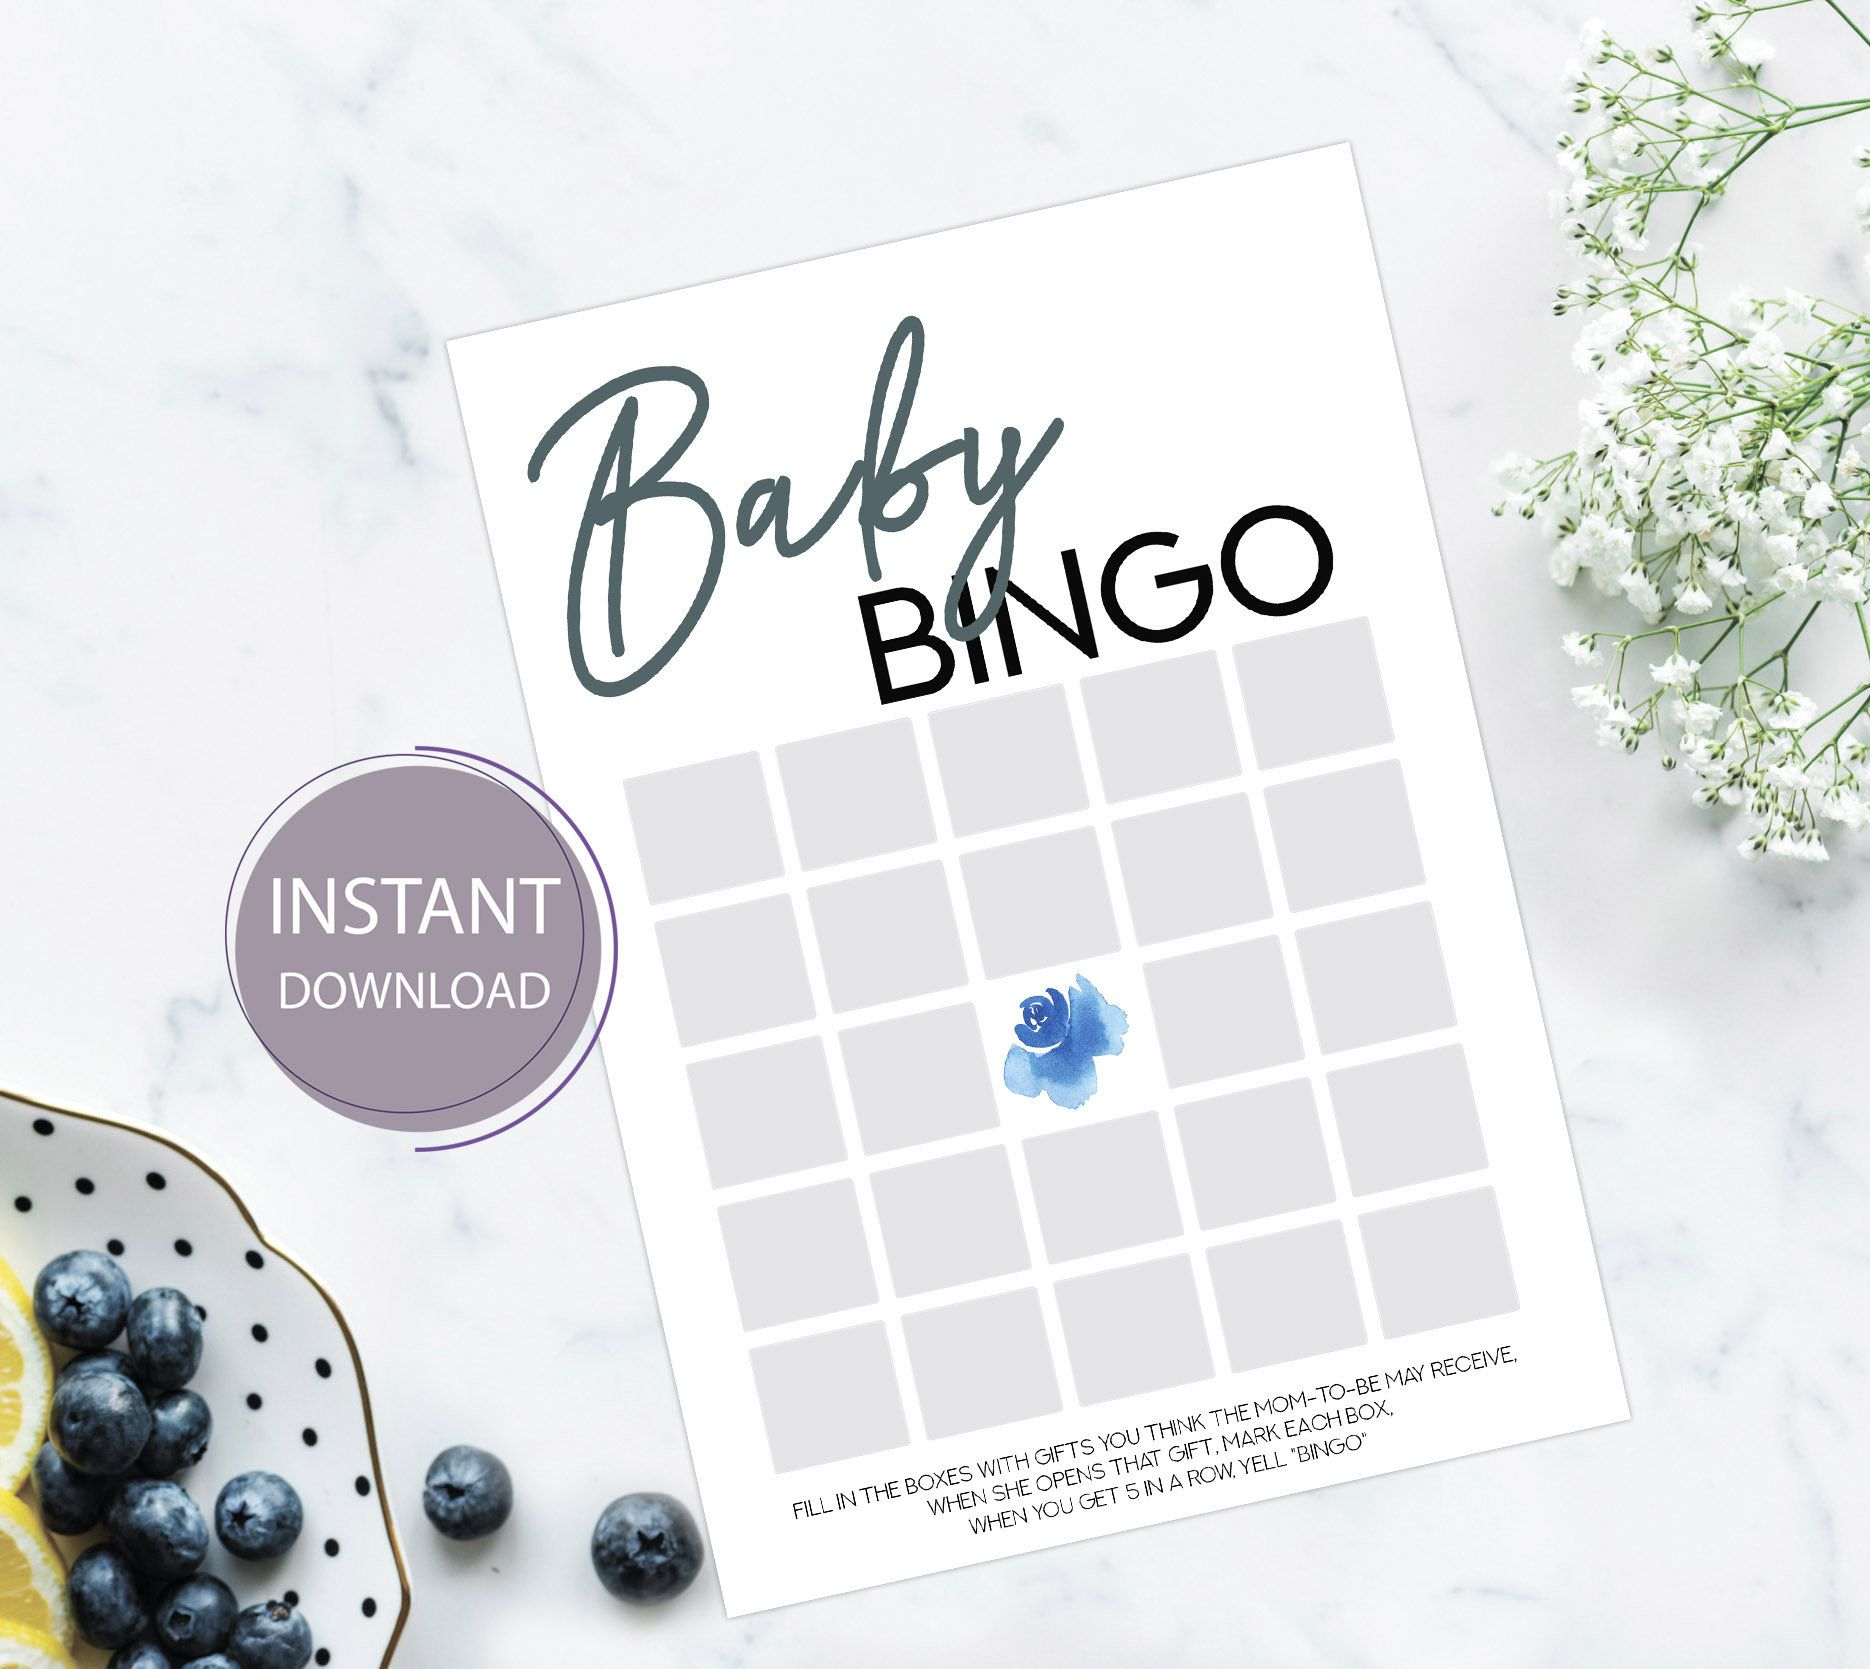 Baby Shower Bingo game, Baby Shower Printable Game Cards, Cloud Baby Shower for boy, PDF Template, Instant Download, Digital